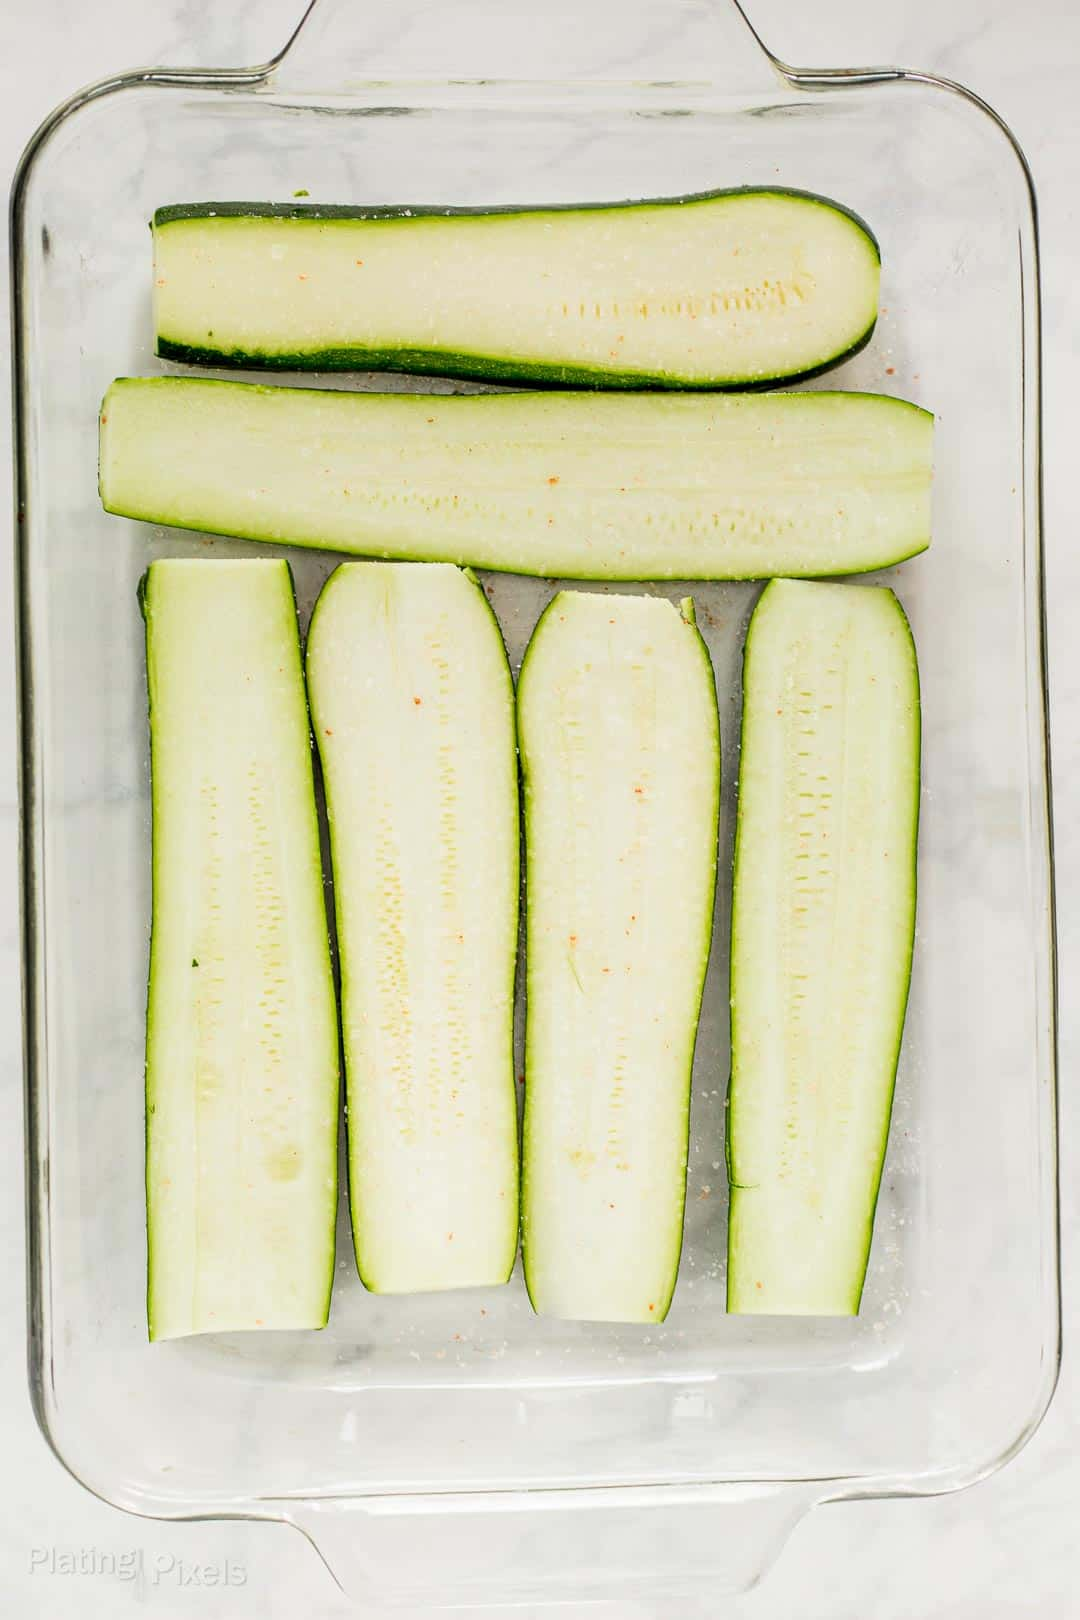 Layer of zucchini slices in a glass baking dish